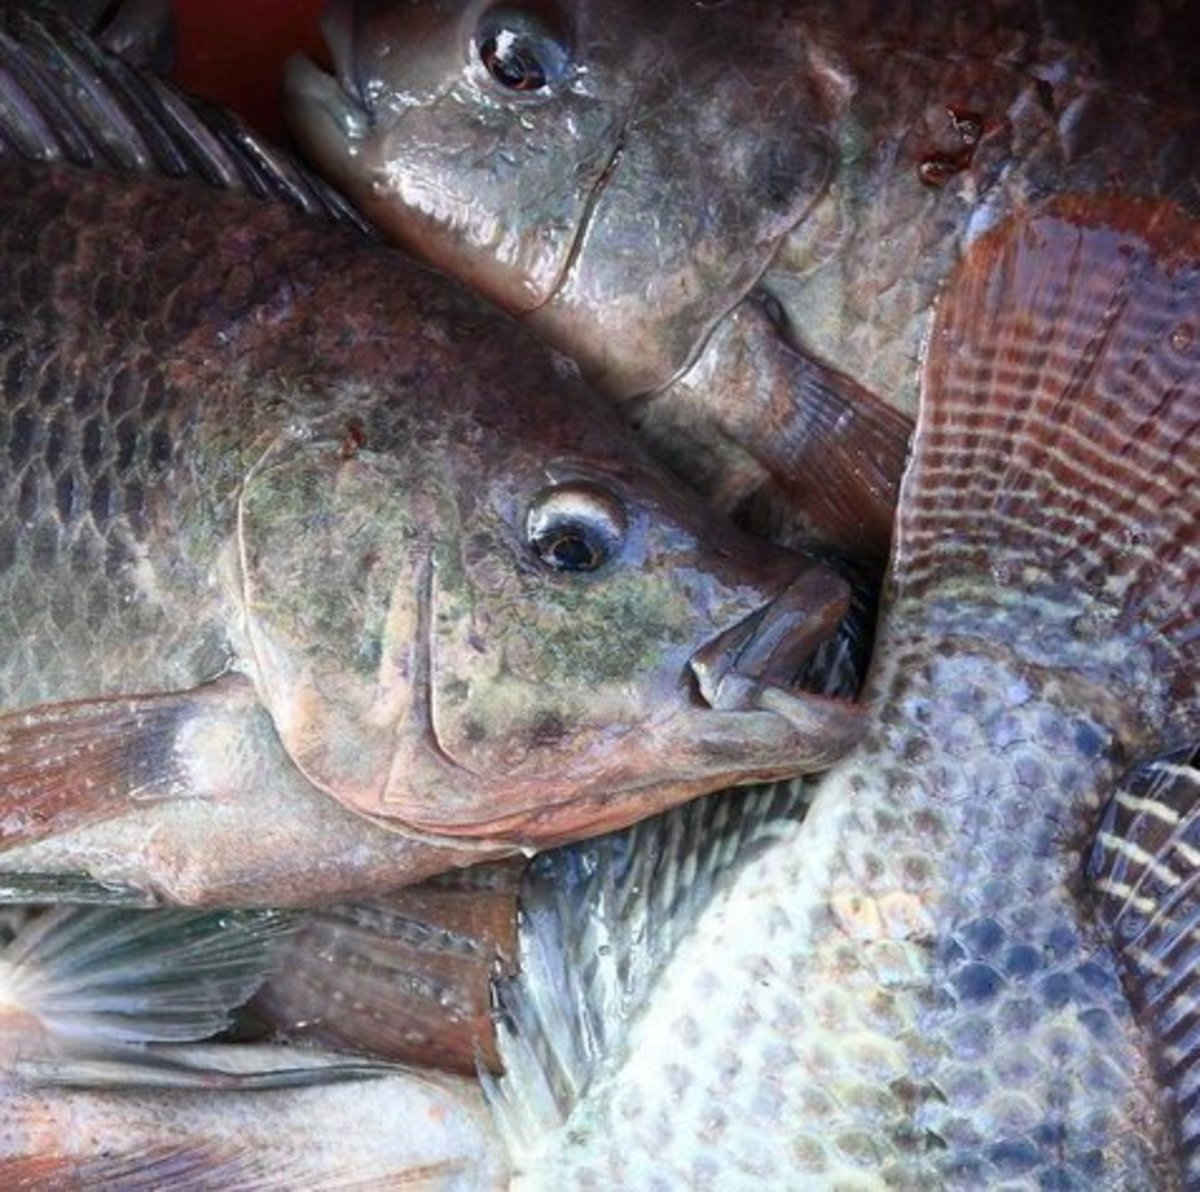 Tilapia Farming in Lakes, Cages, and Tanks